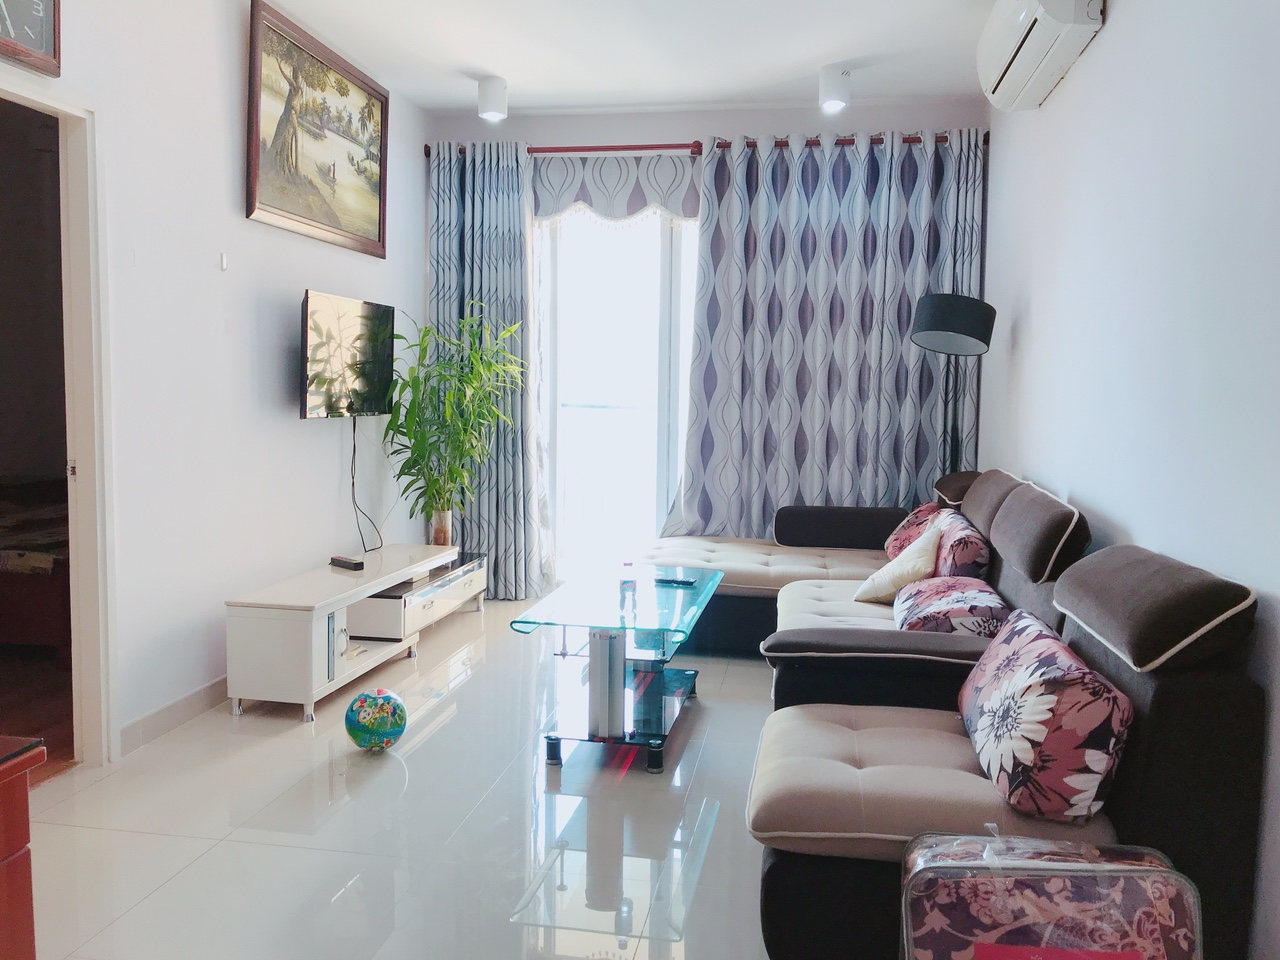 Kitchen : Furnished Laundry Area: Washer + Dry Hanger. Monthly Rent: 11  Million Dong/ Month. Please Call Vung Tau Rental Agency 0937 131 811 For  Showing!!!